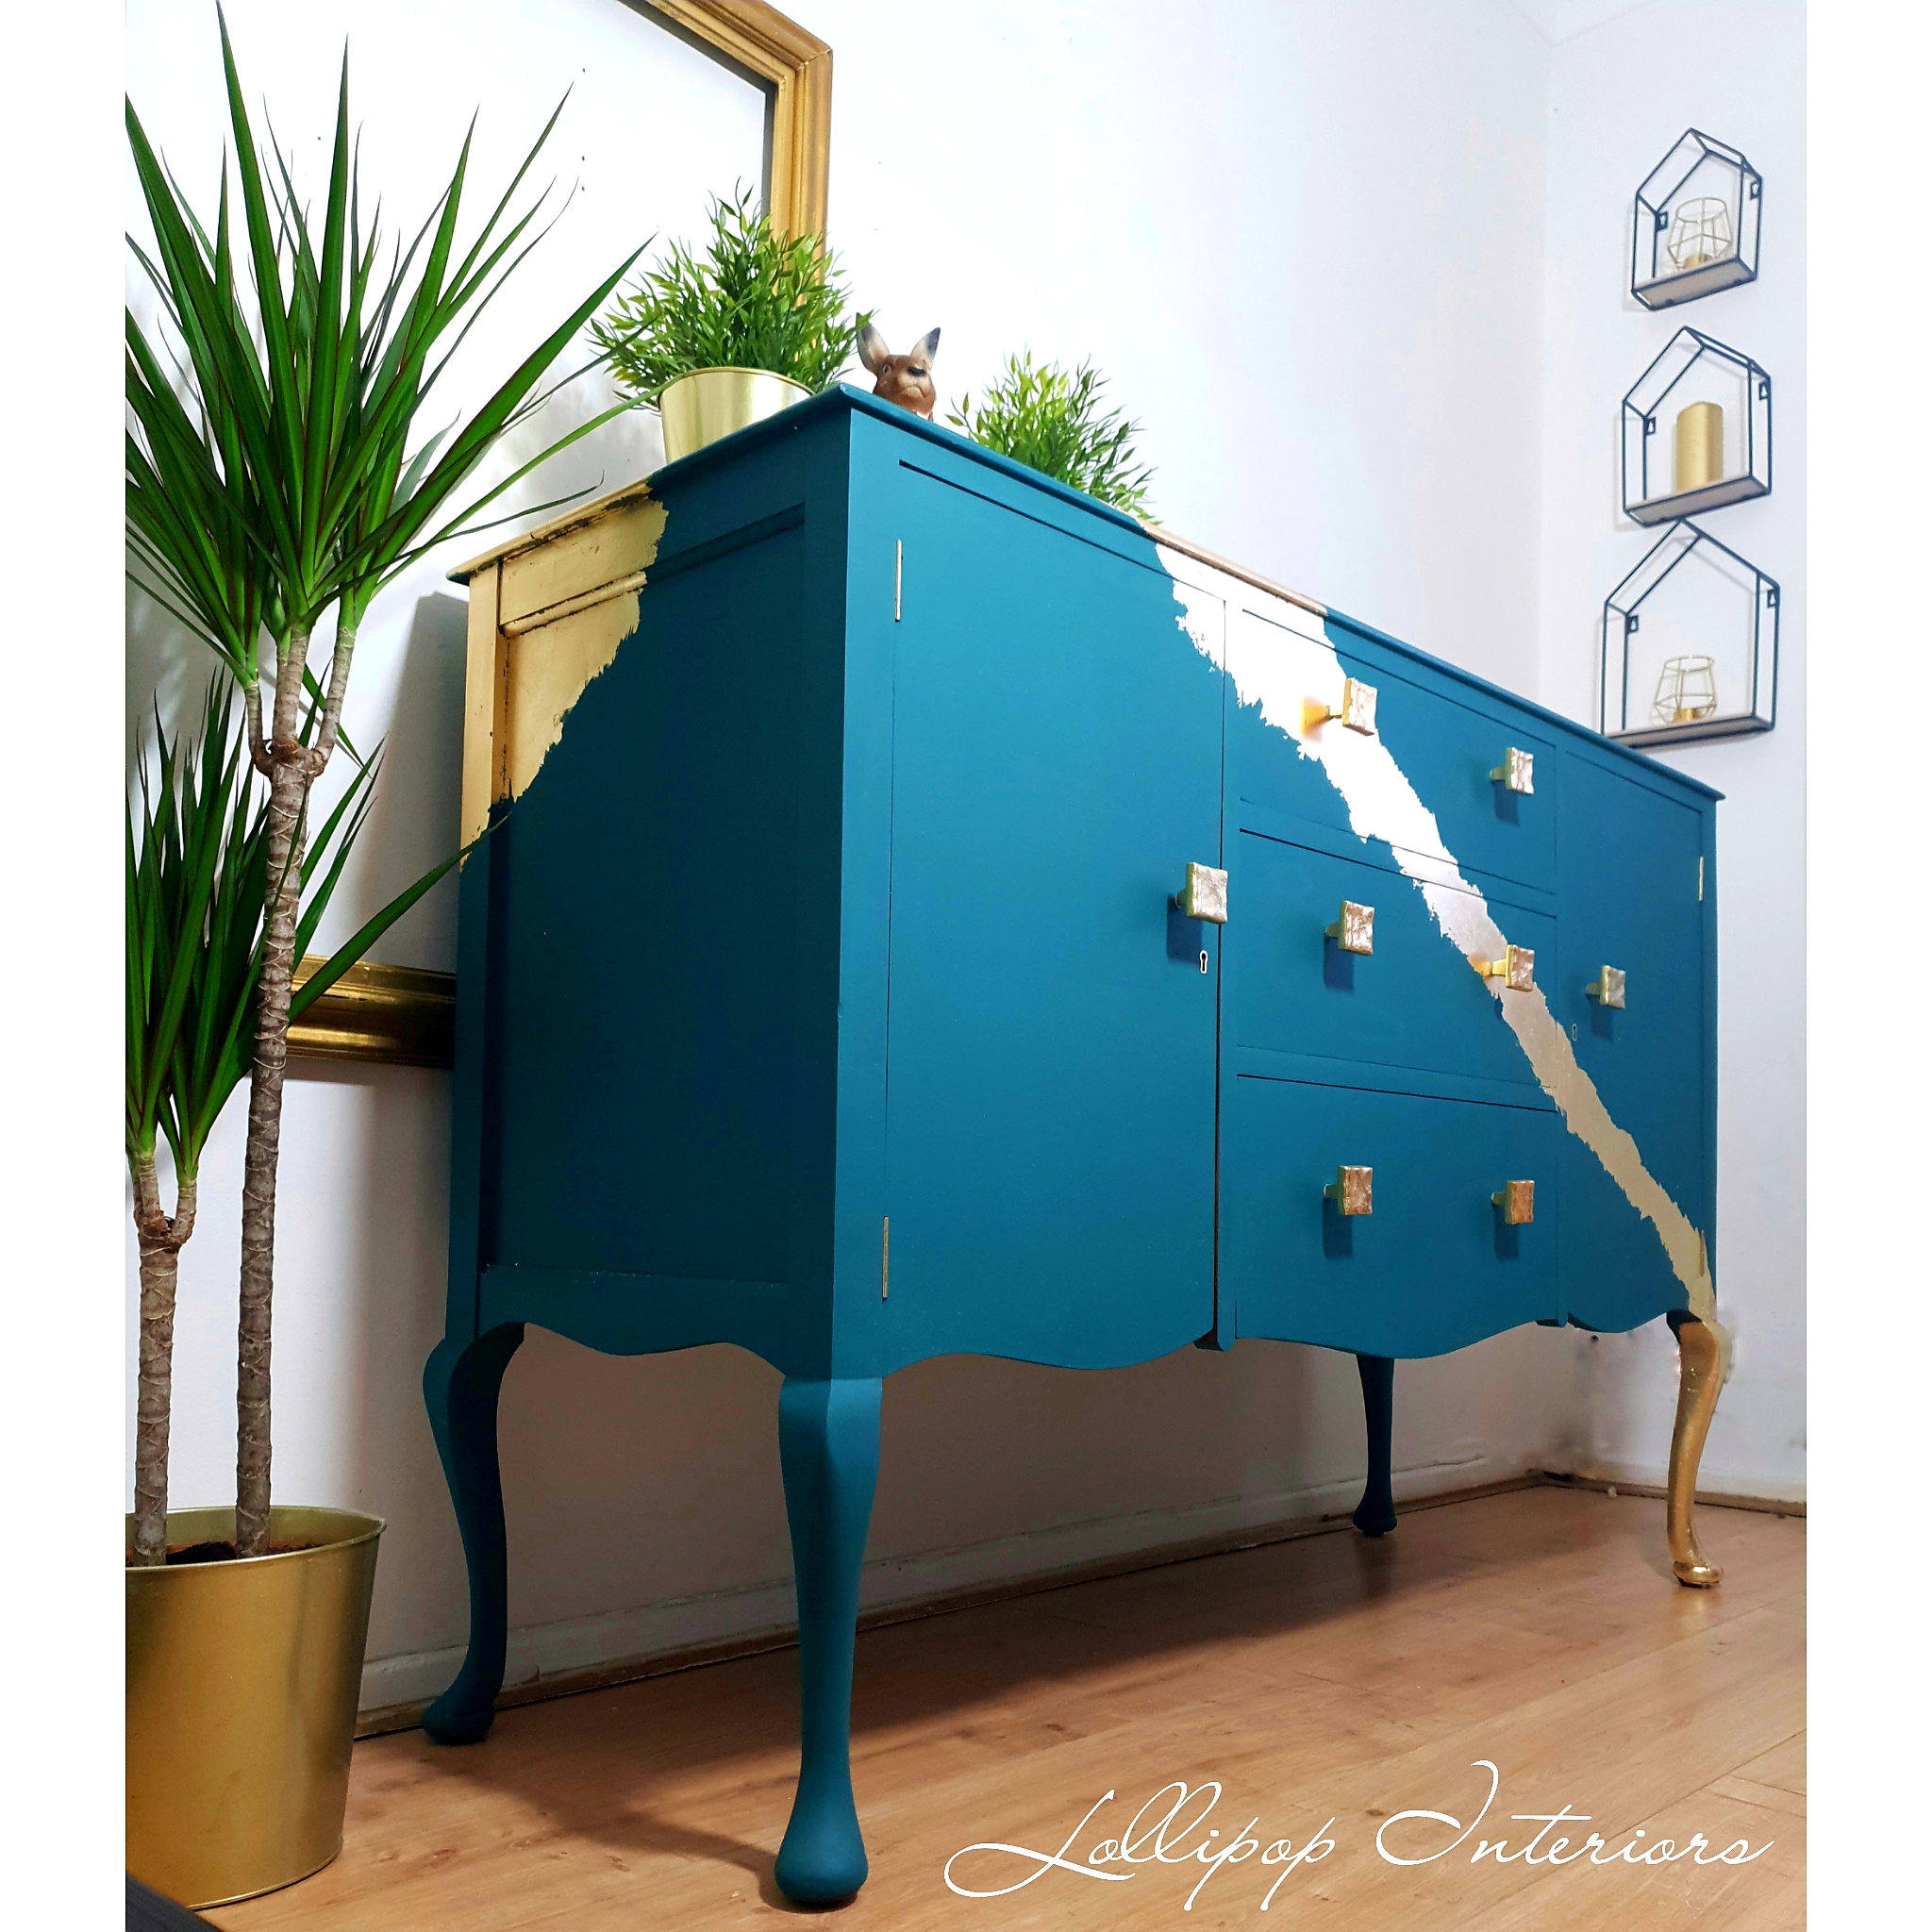 The House of Upcycling: Lollipop Interiors Refinished Sideboard in Teal & Gold